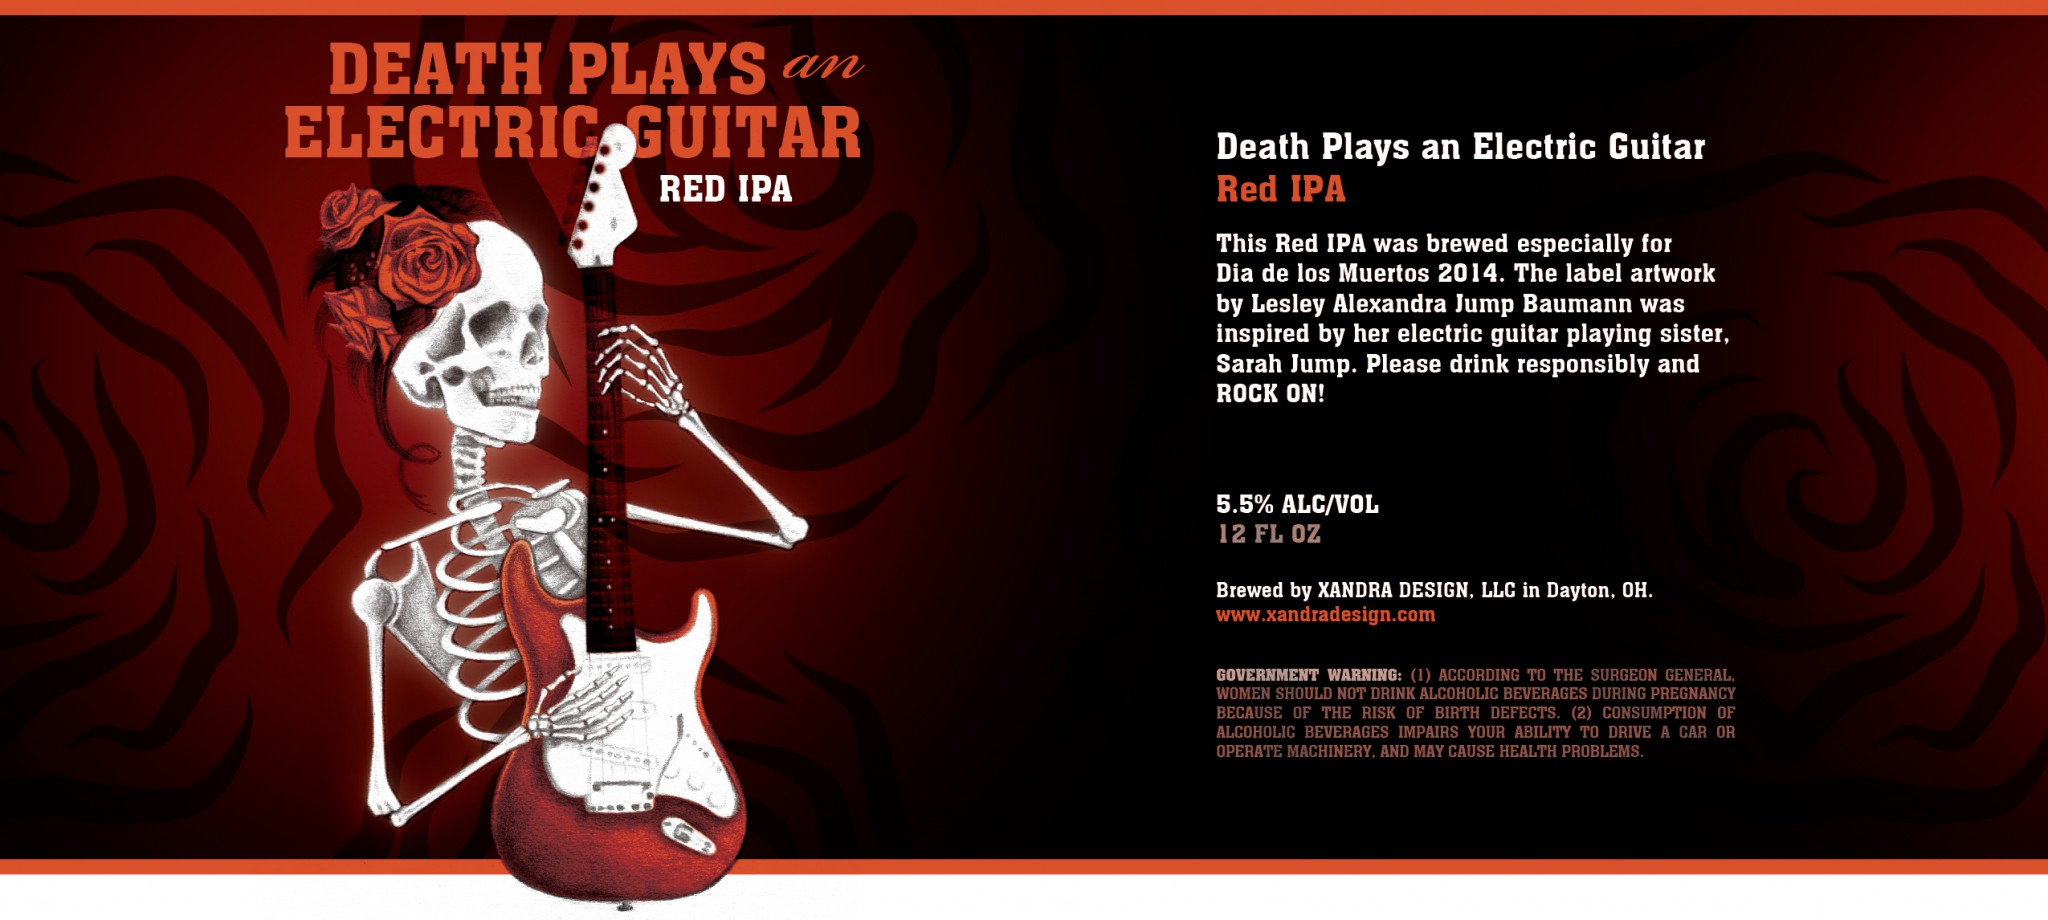 Death Plays an Electric Guitar Label